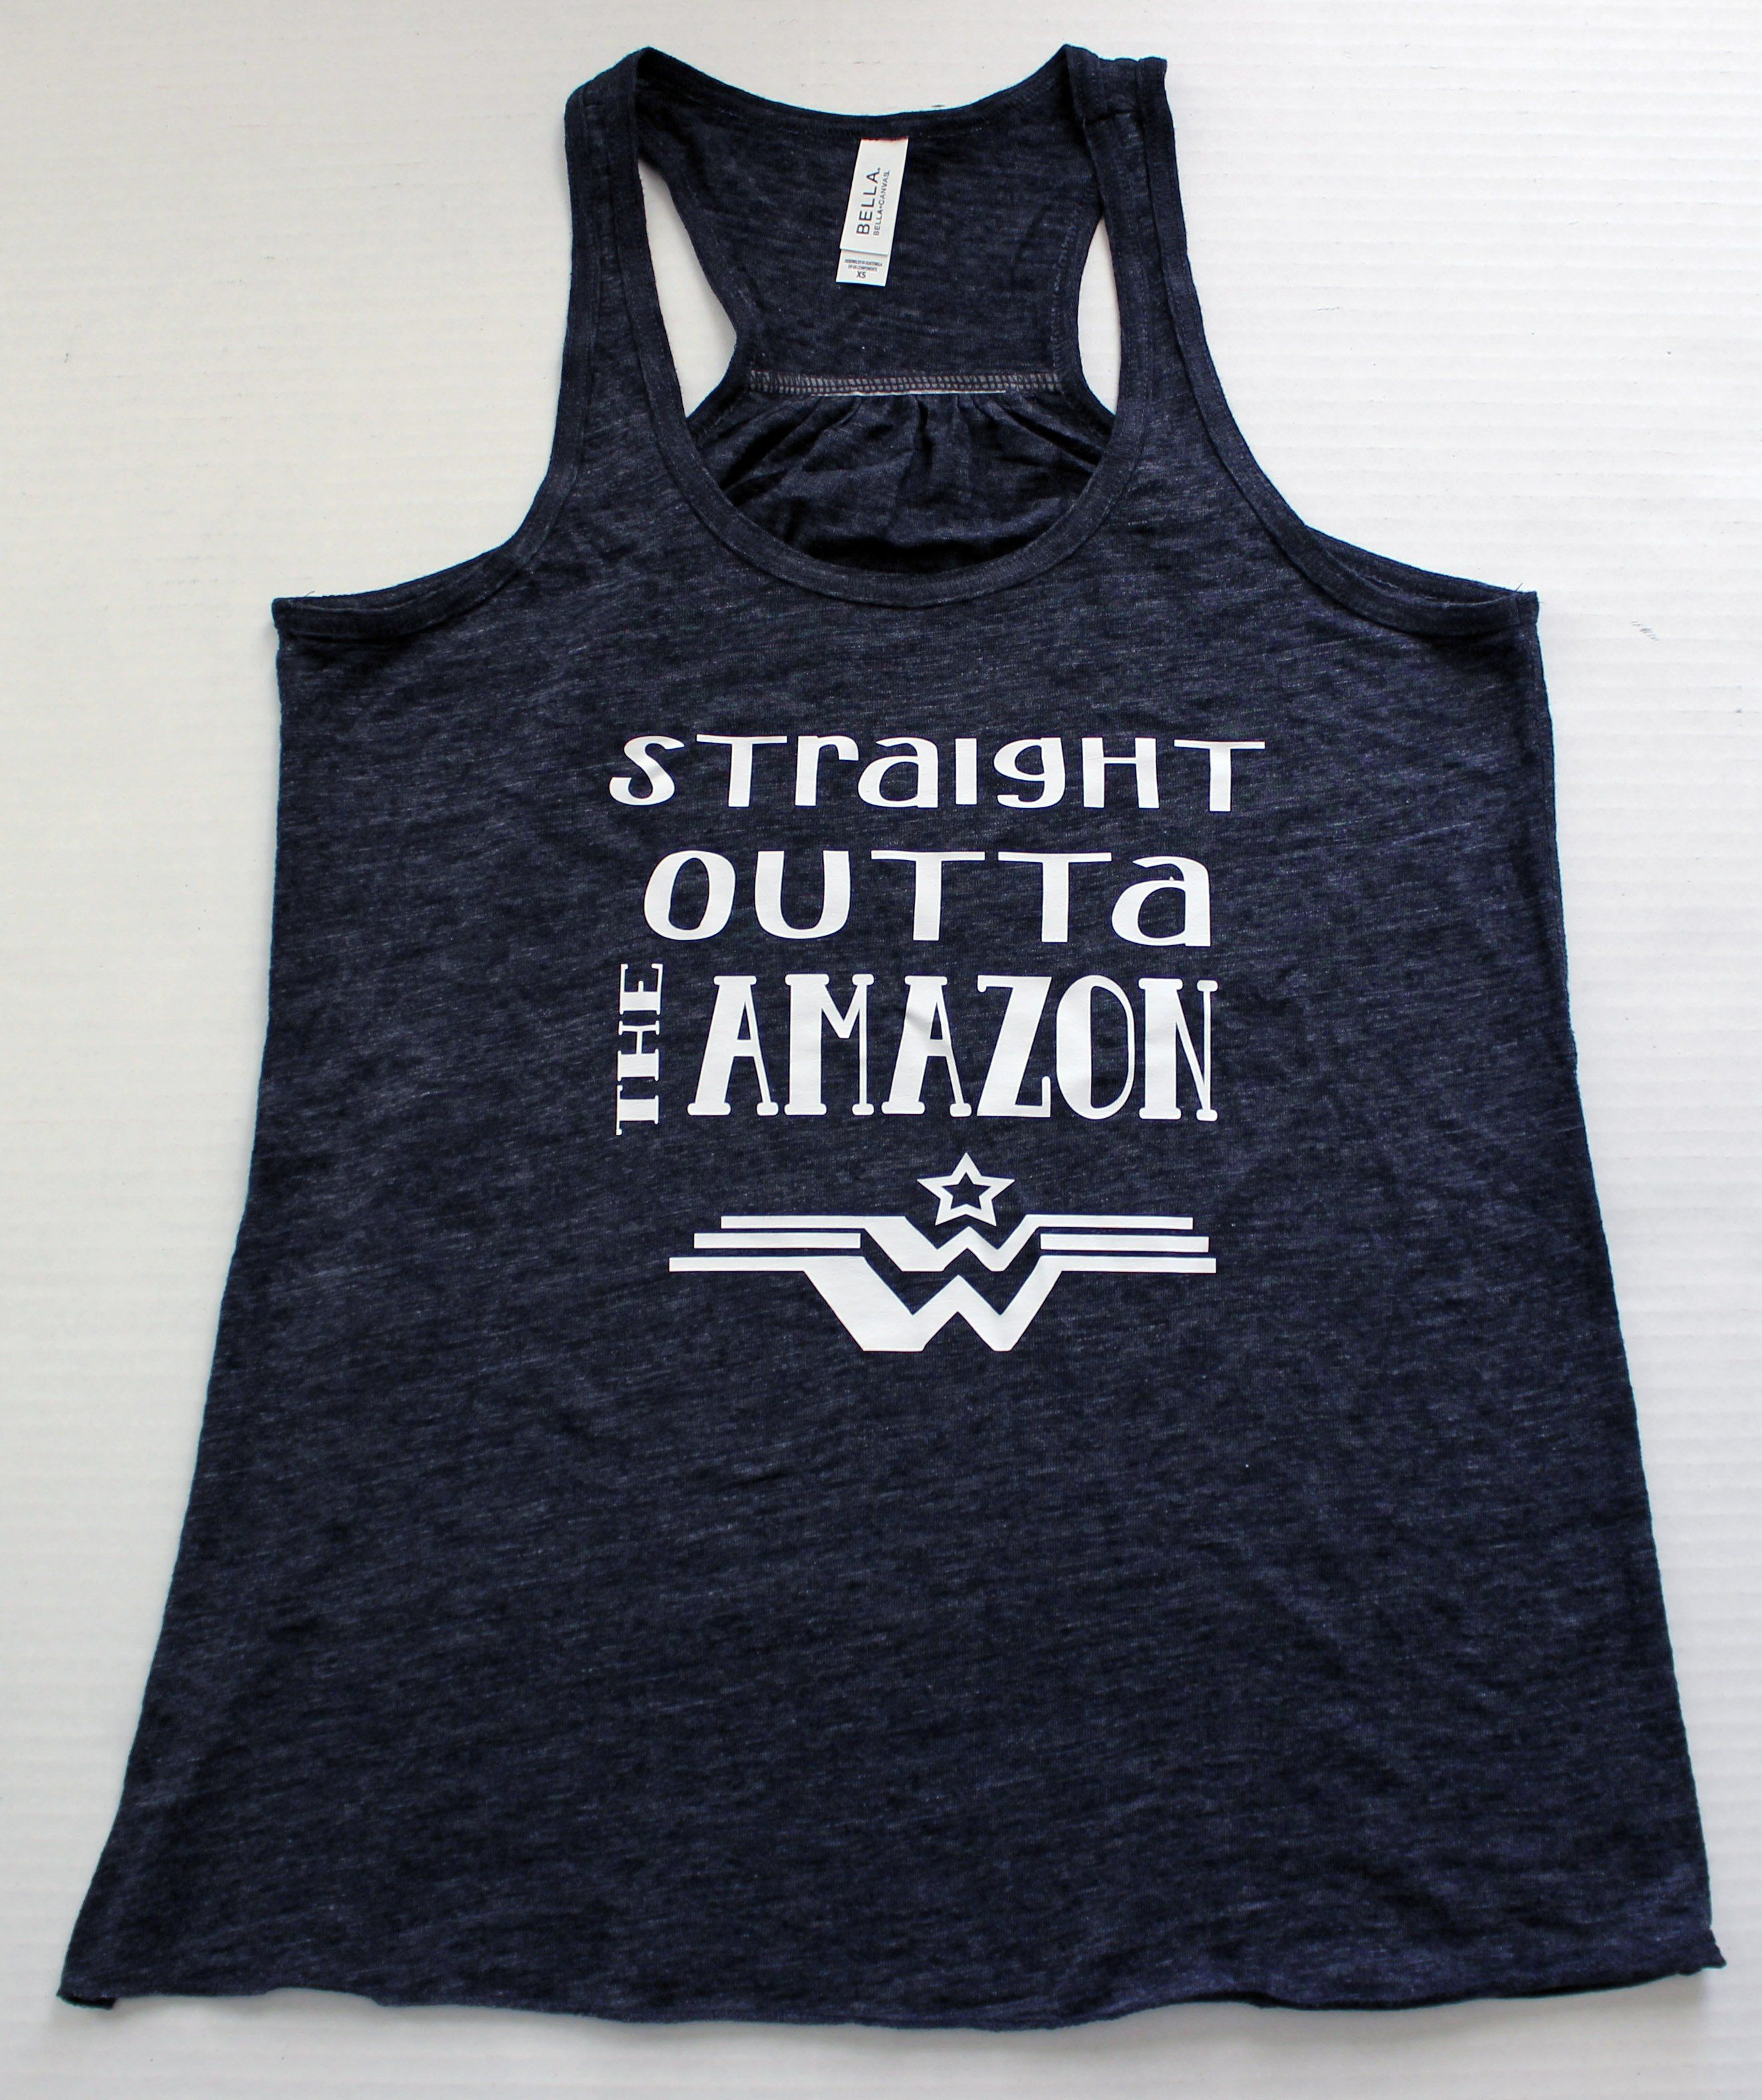 dbf5ef3d0 straight outta the Amazon - tank and shirt   Products   Racerback ...